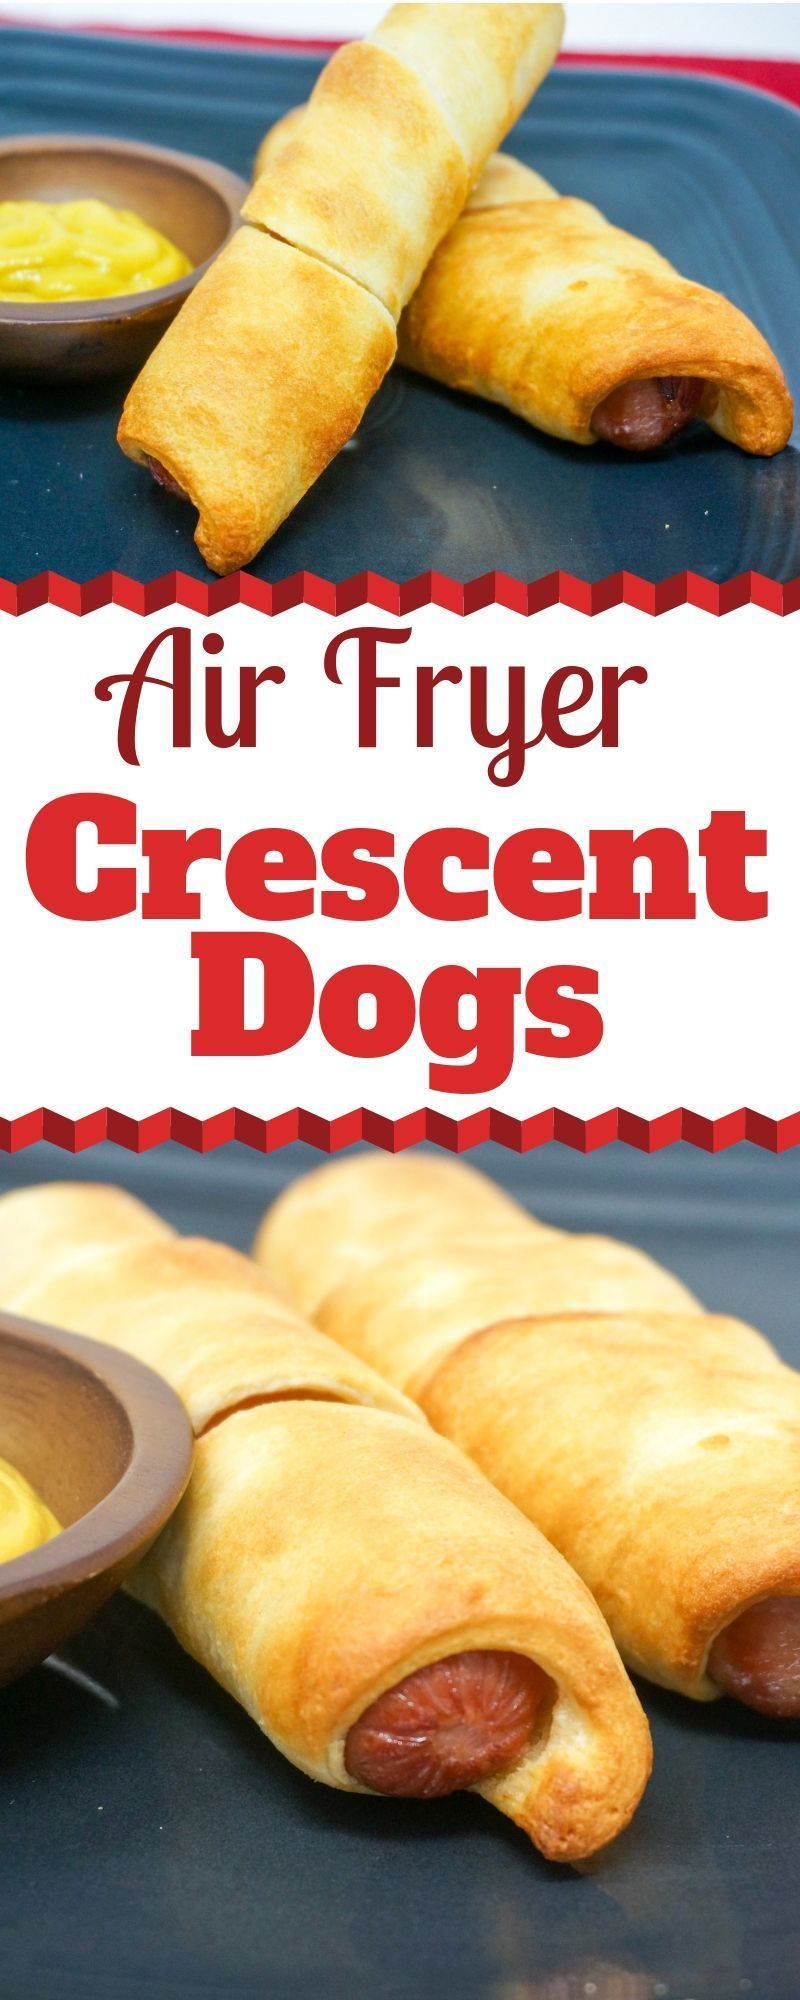 Air Fryer Crescent Dogs Grace Like Rain Blog